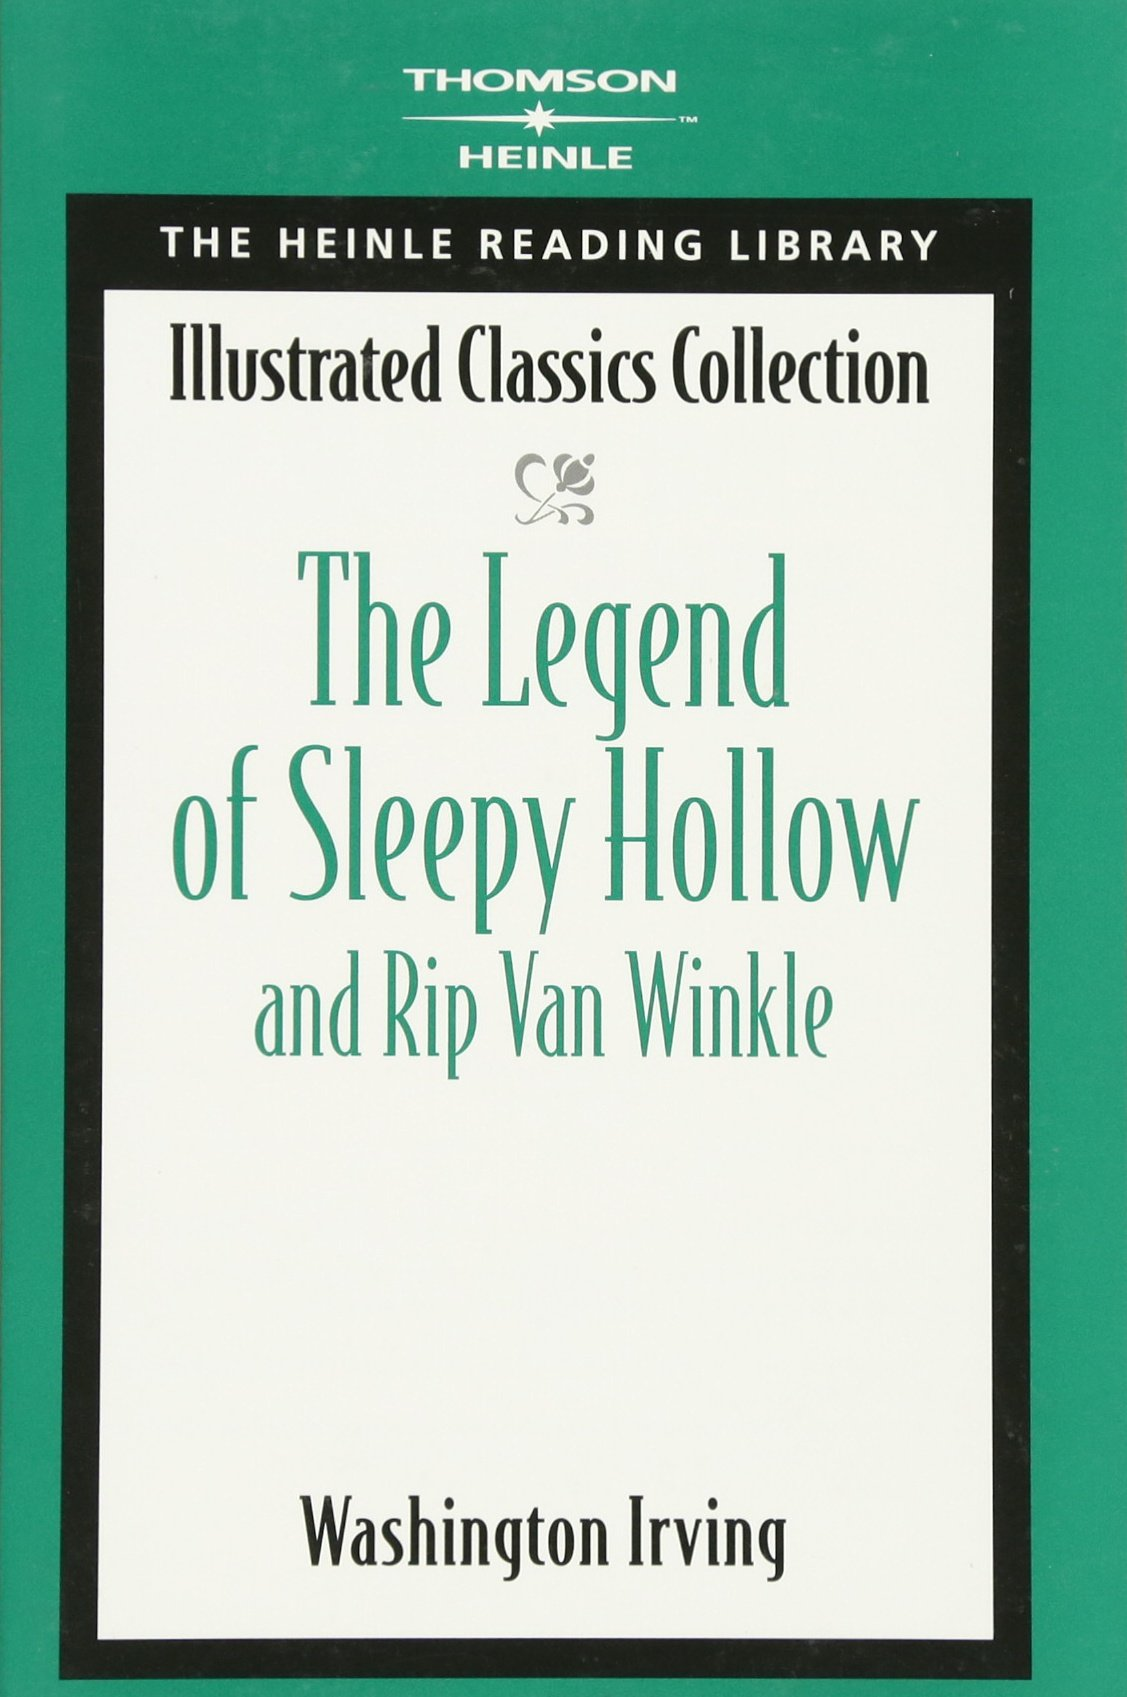 The Heinle Reading  The Legend Of The Sleepy Hollow pdf